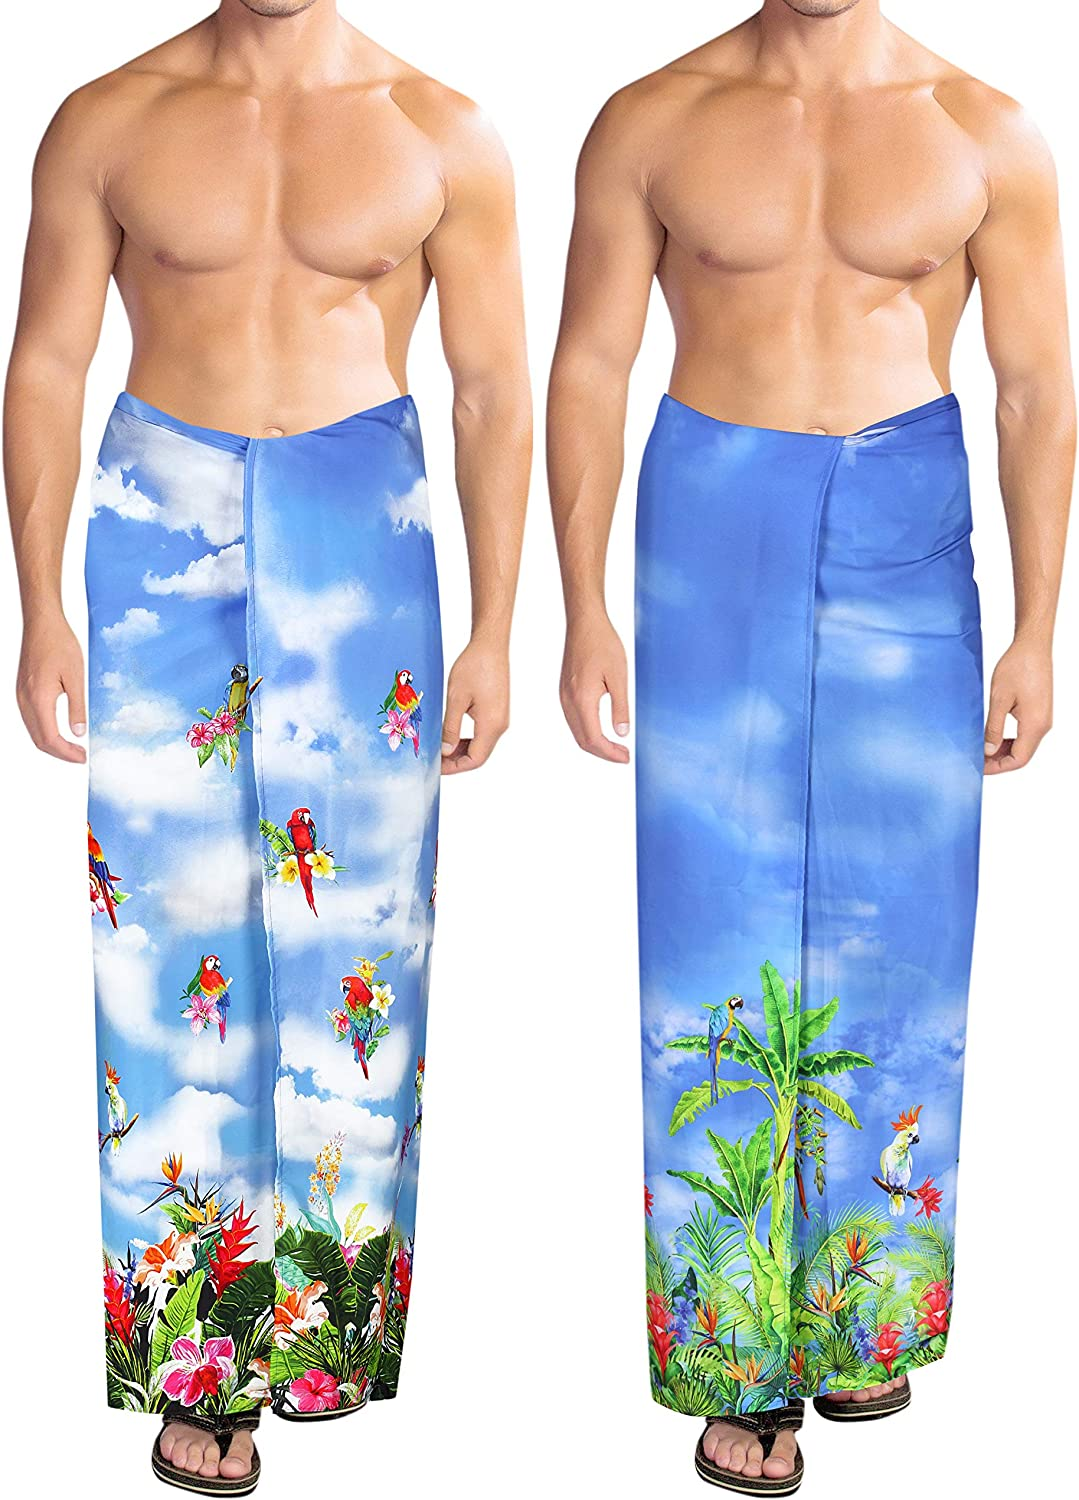 HAPPY BAY Men Swimsuit Cover Up Beach Wrap Lungi Sarong Wraps Work from  Home Clothes Women Beach Wrap Sarong Pack of 2 at Amazon Women's Clothing  store